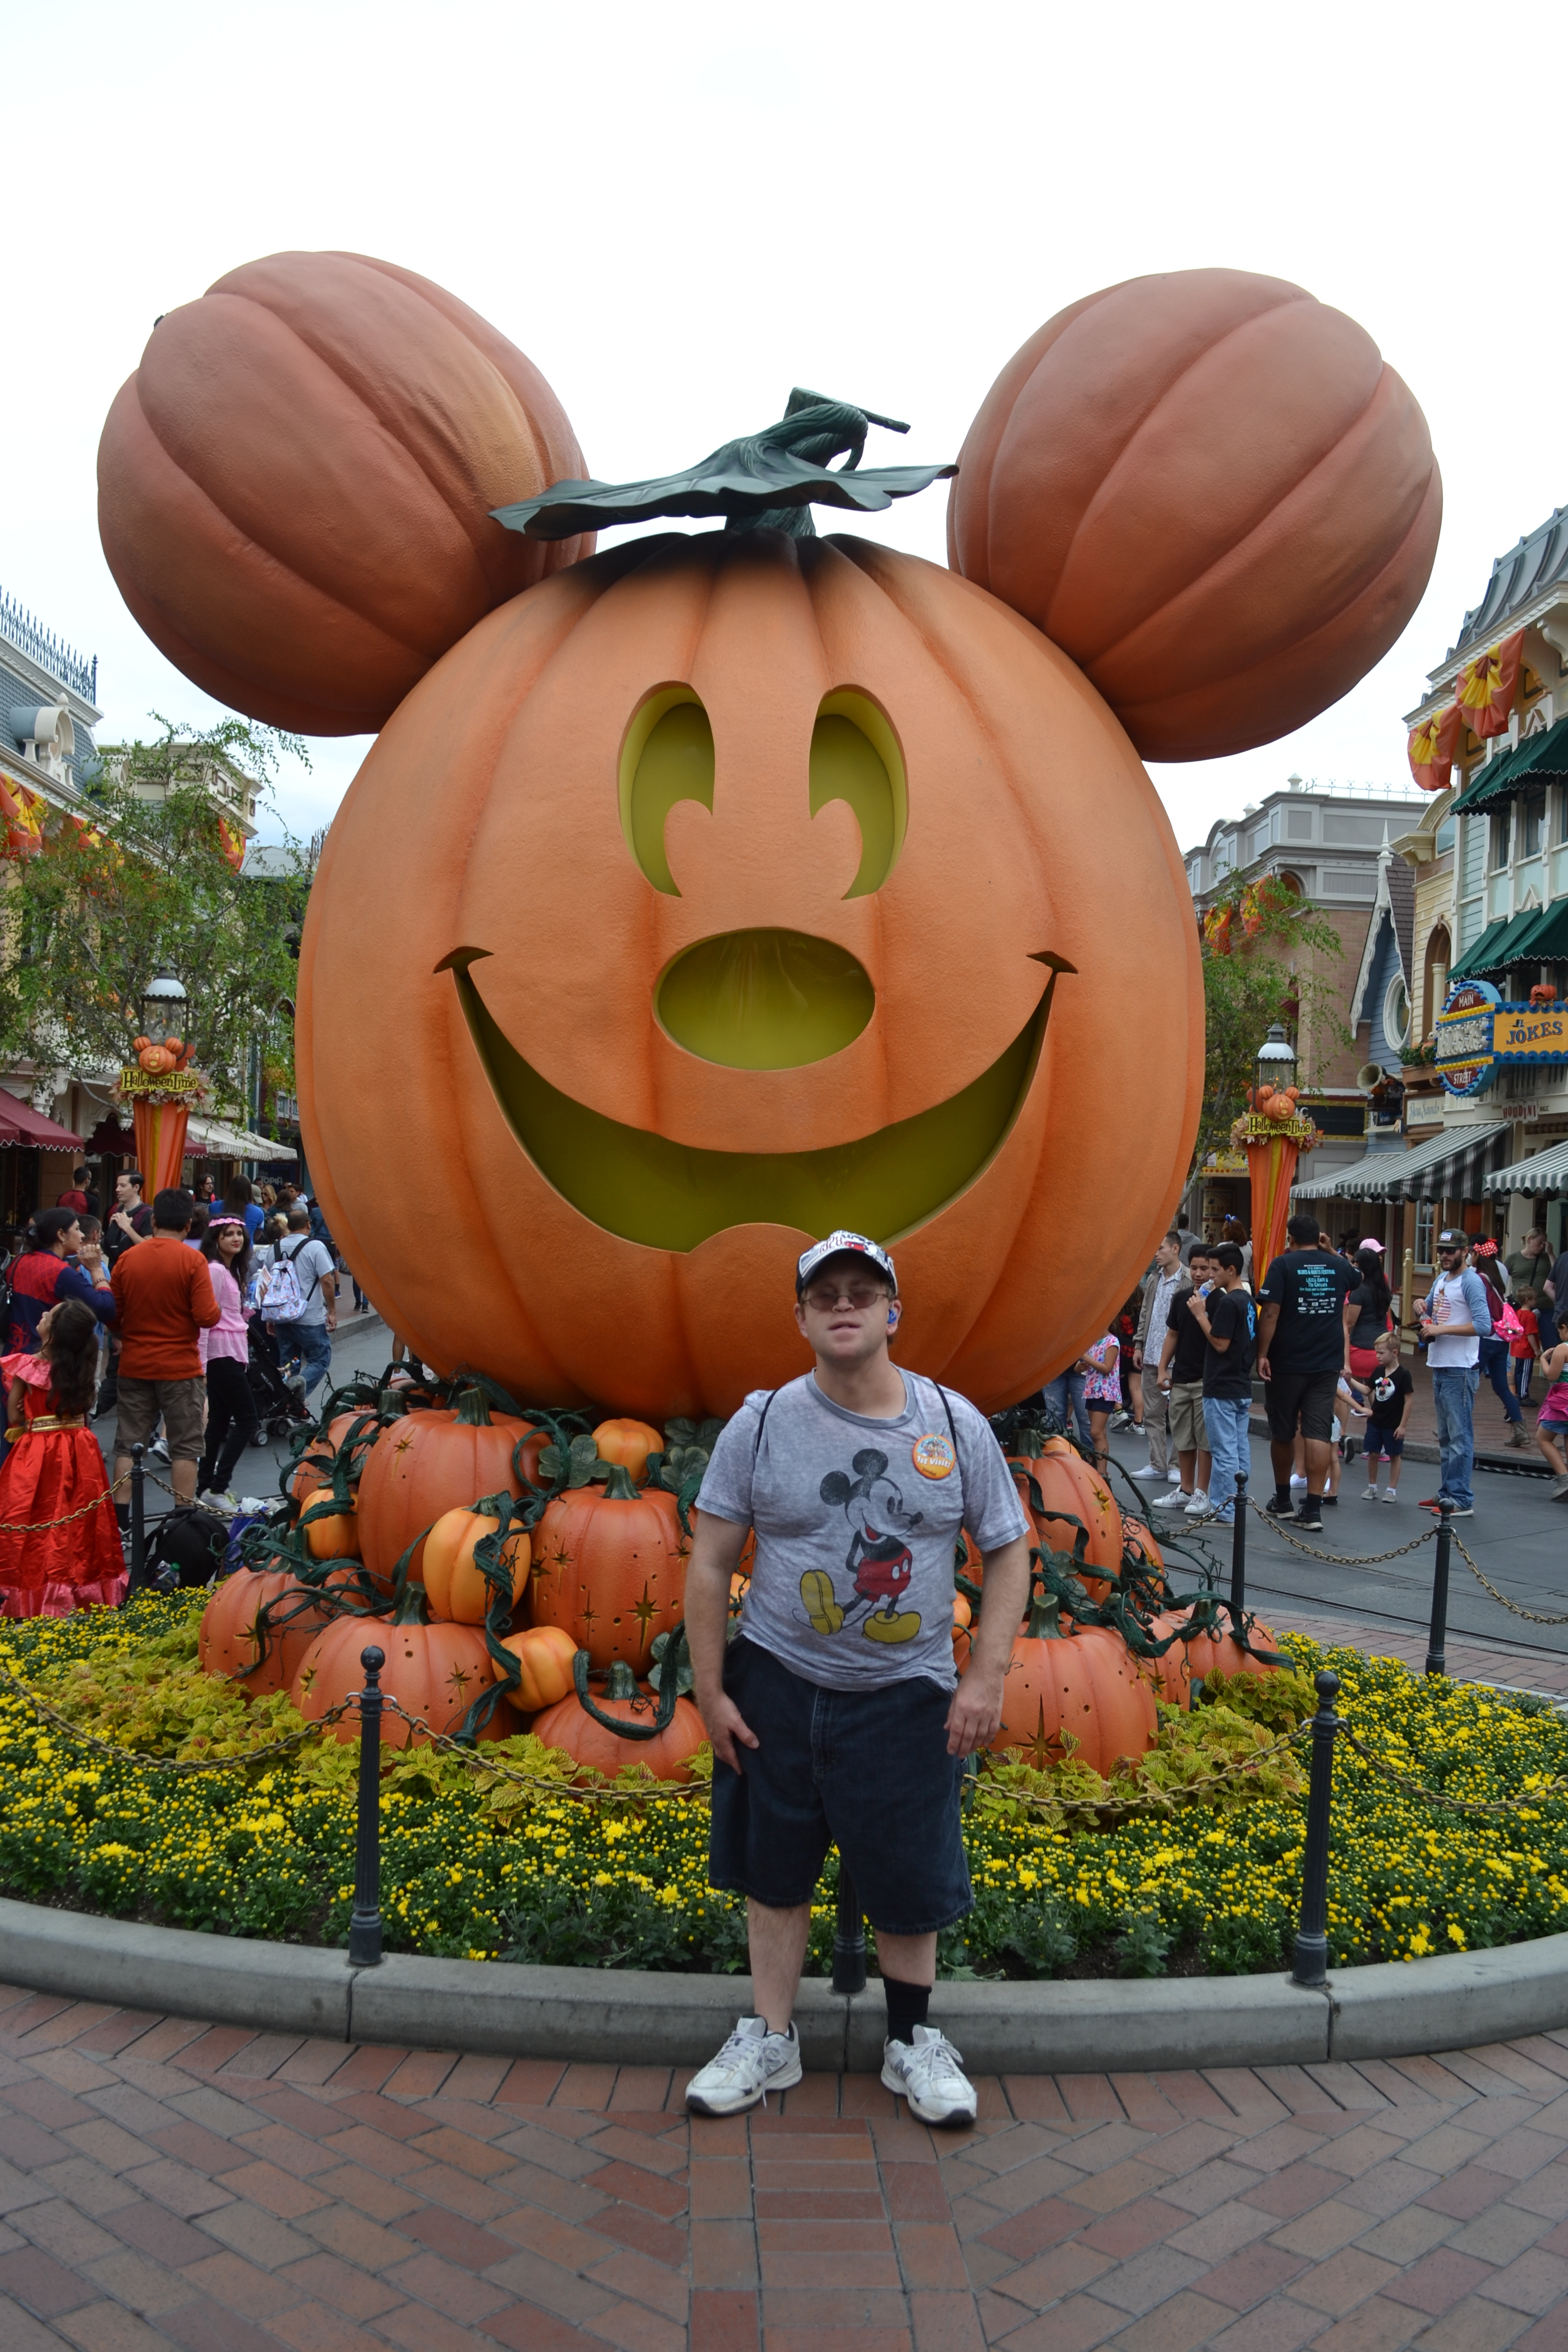 Vacationer standing in front of giant Micky Mouse